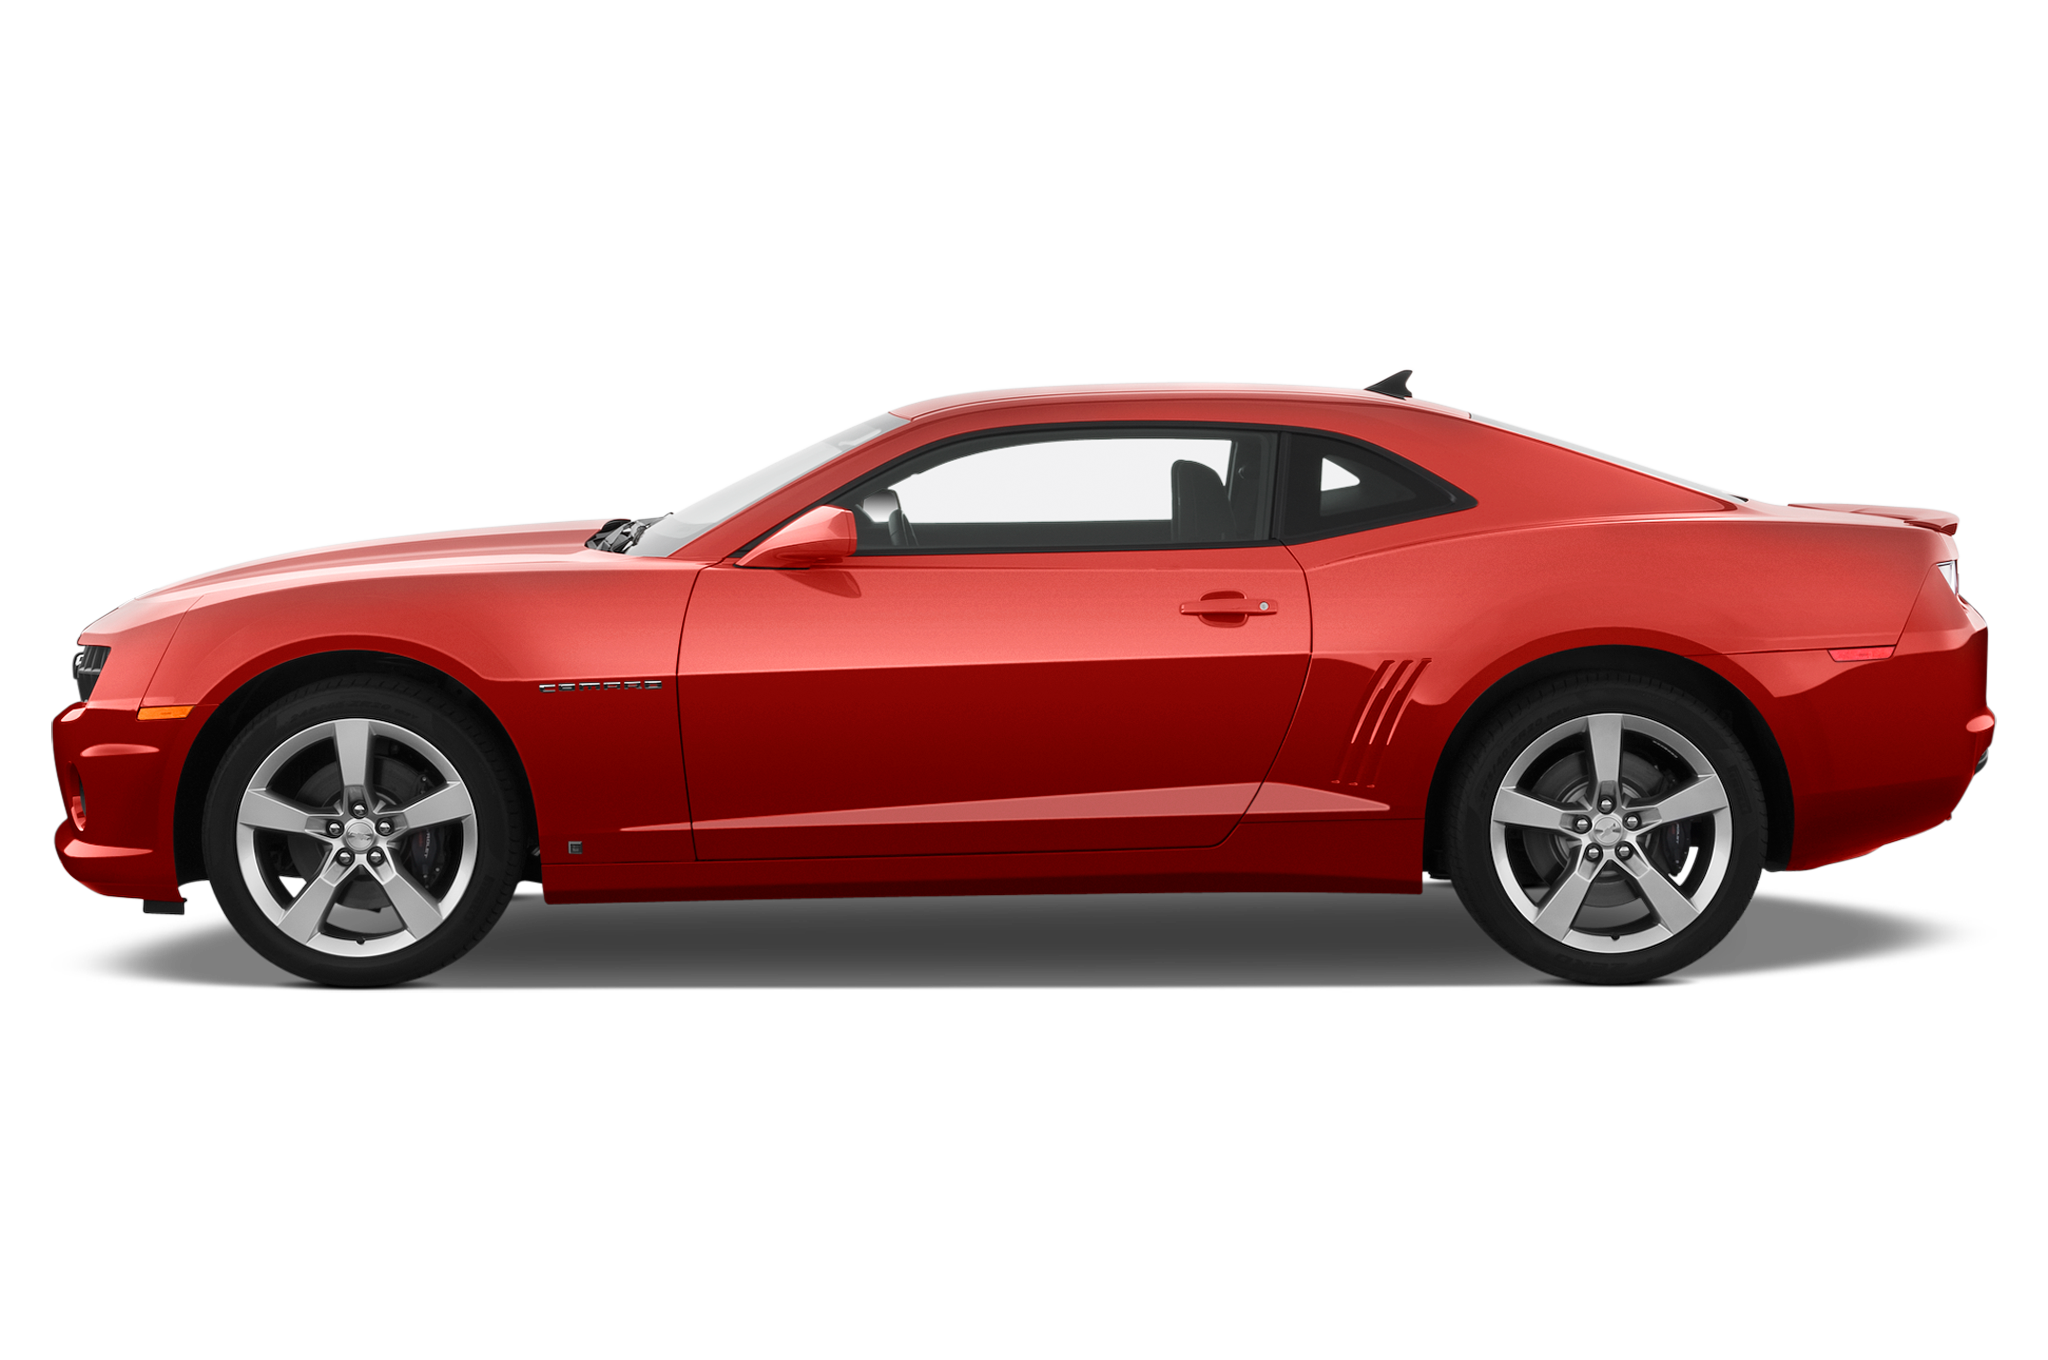 2010 Chevrolet Camaro 2LT Coupe - Chevy Sport Coupe Review ...